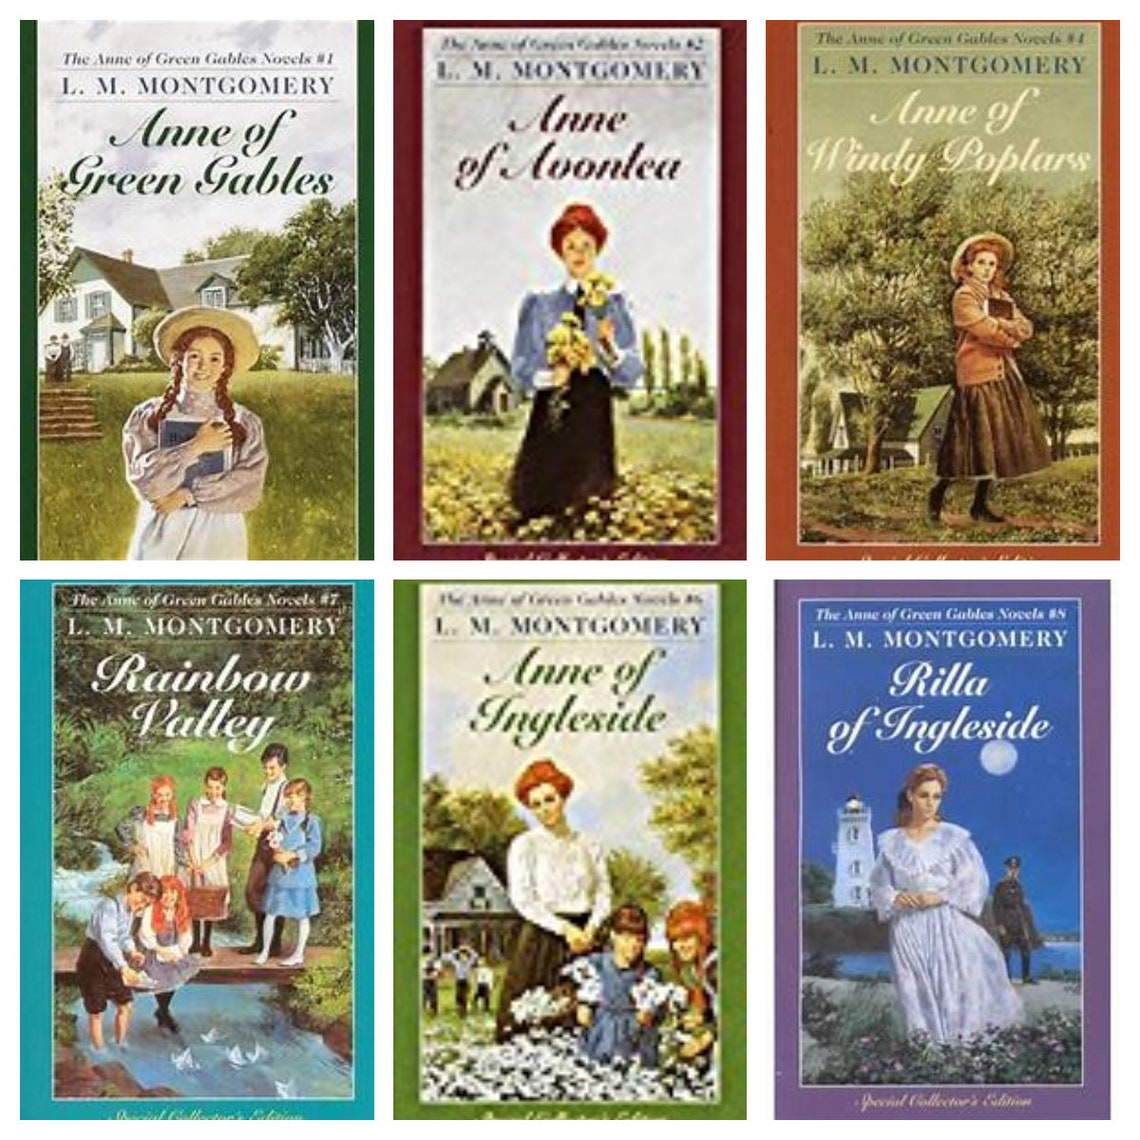 L. M. Montgomery  Anne 0f Green Gables Series image 0